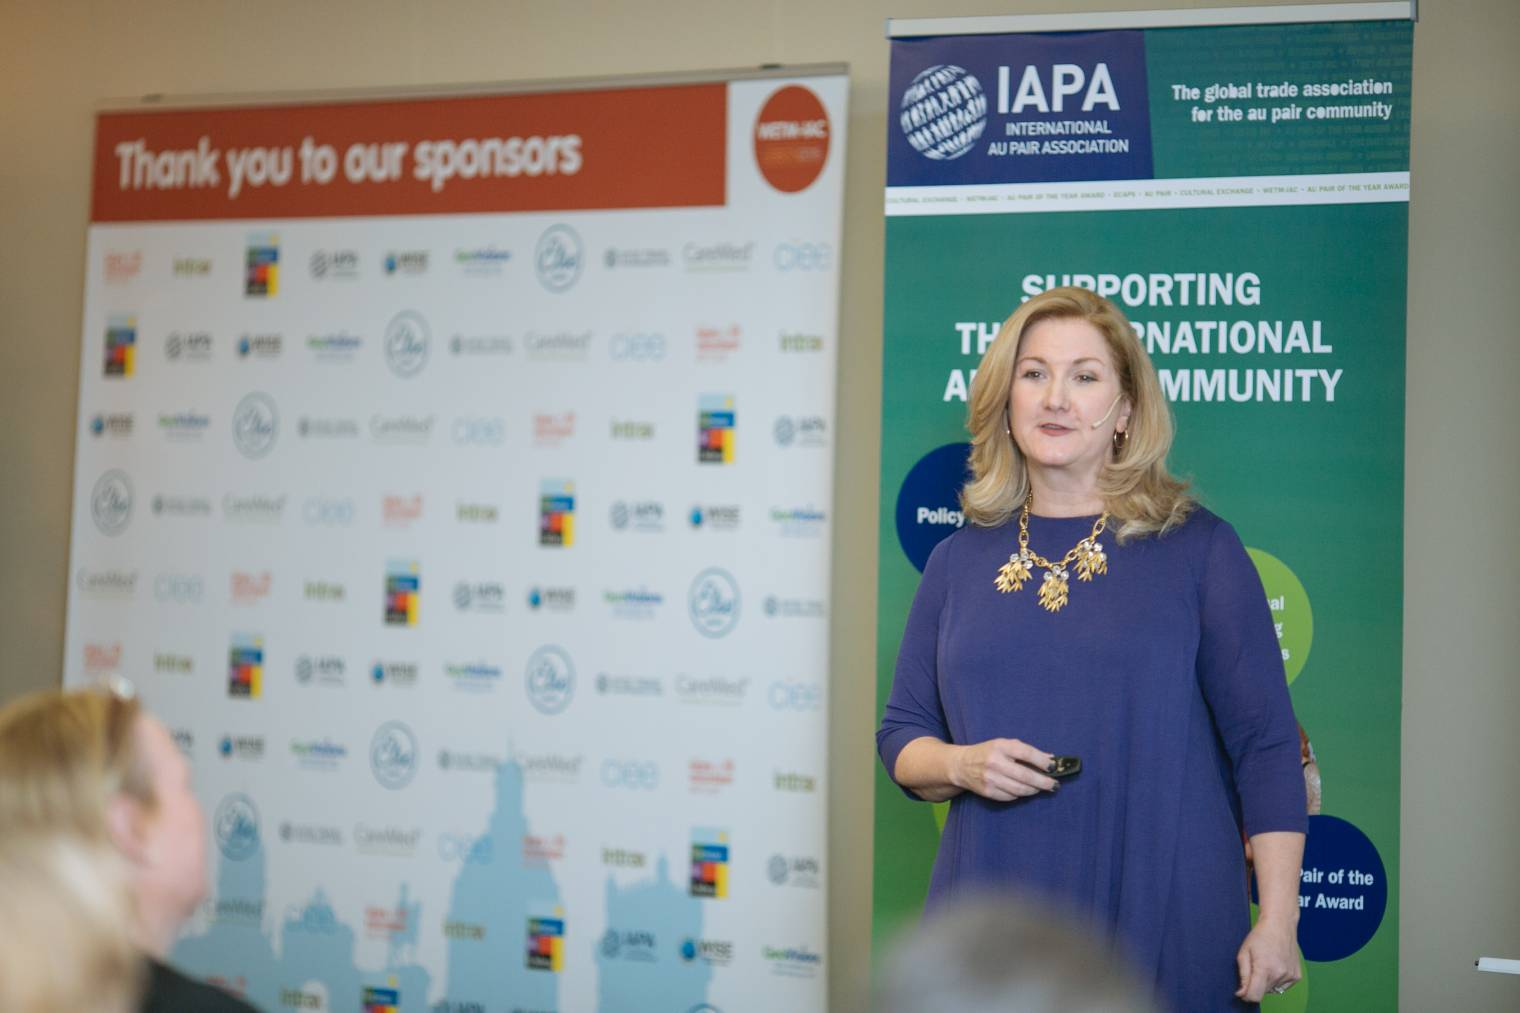 Online community manager 'AuPairMom' shares her unique insight with WETM-IAC 2015 delegates